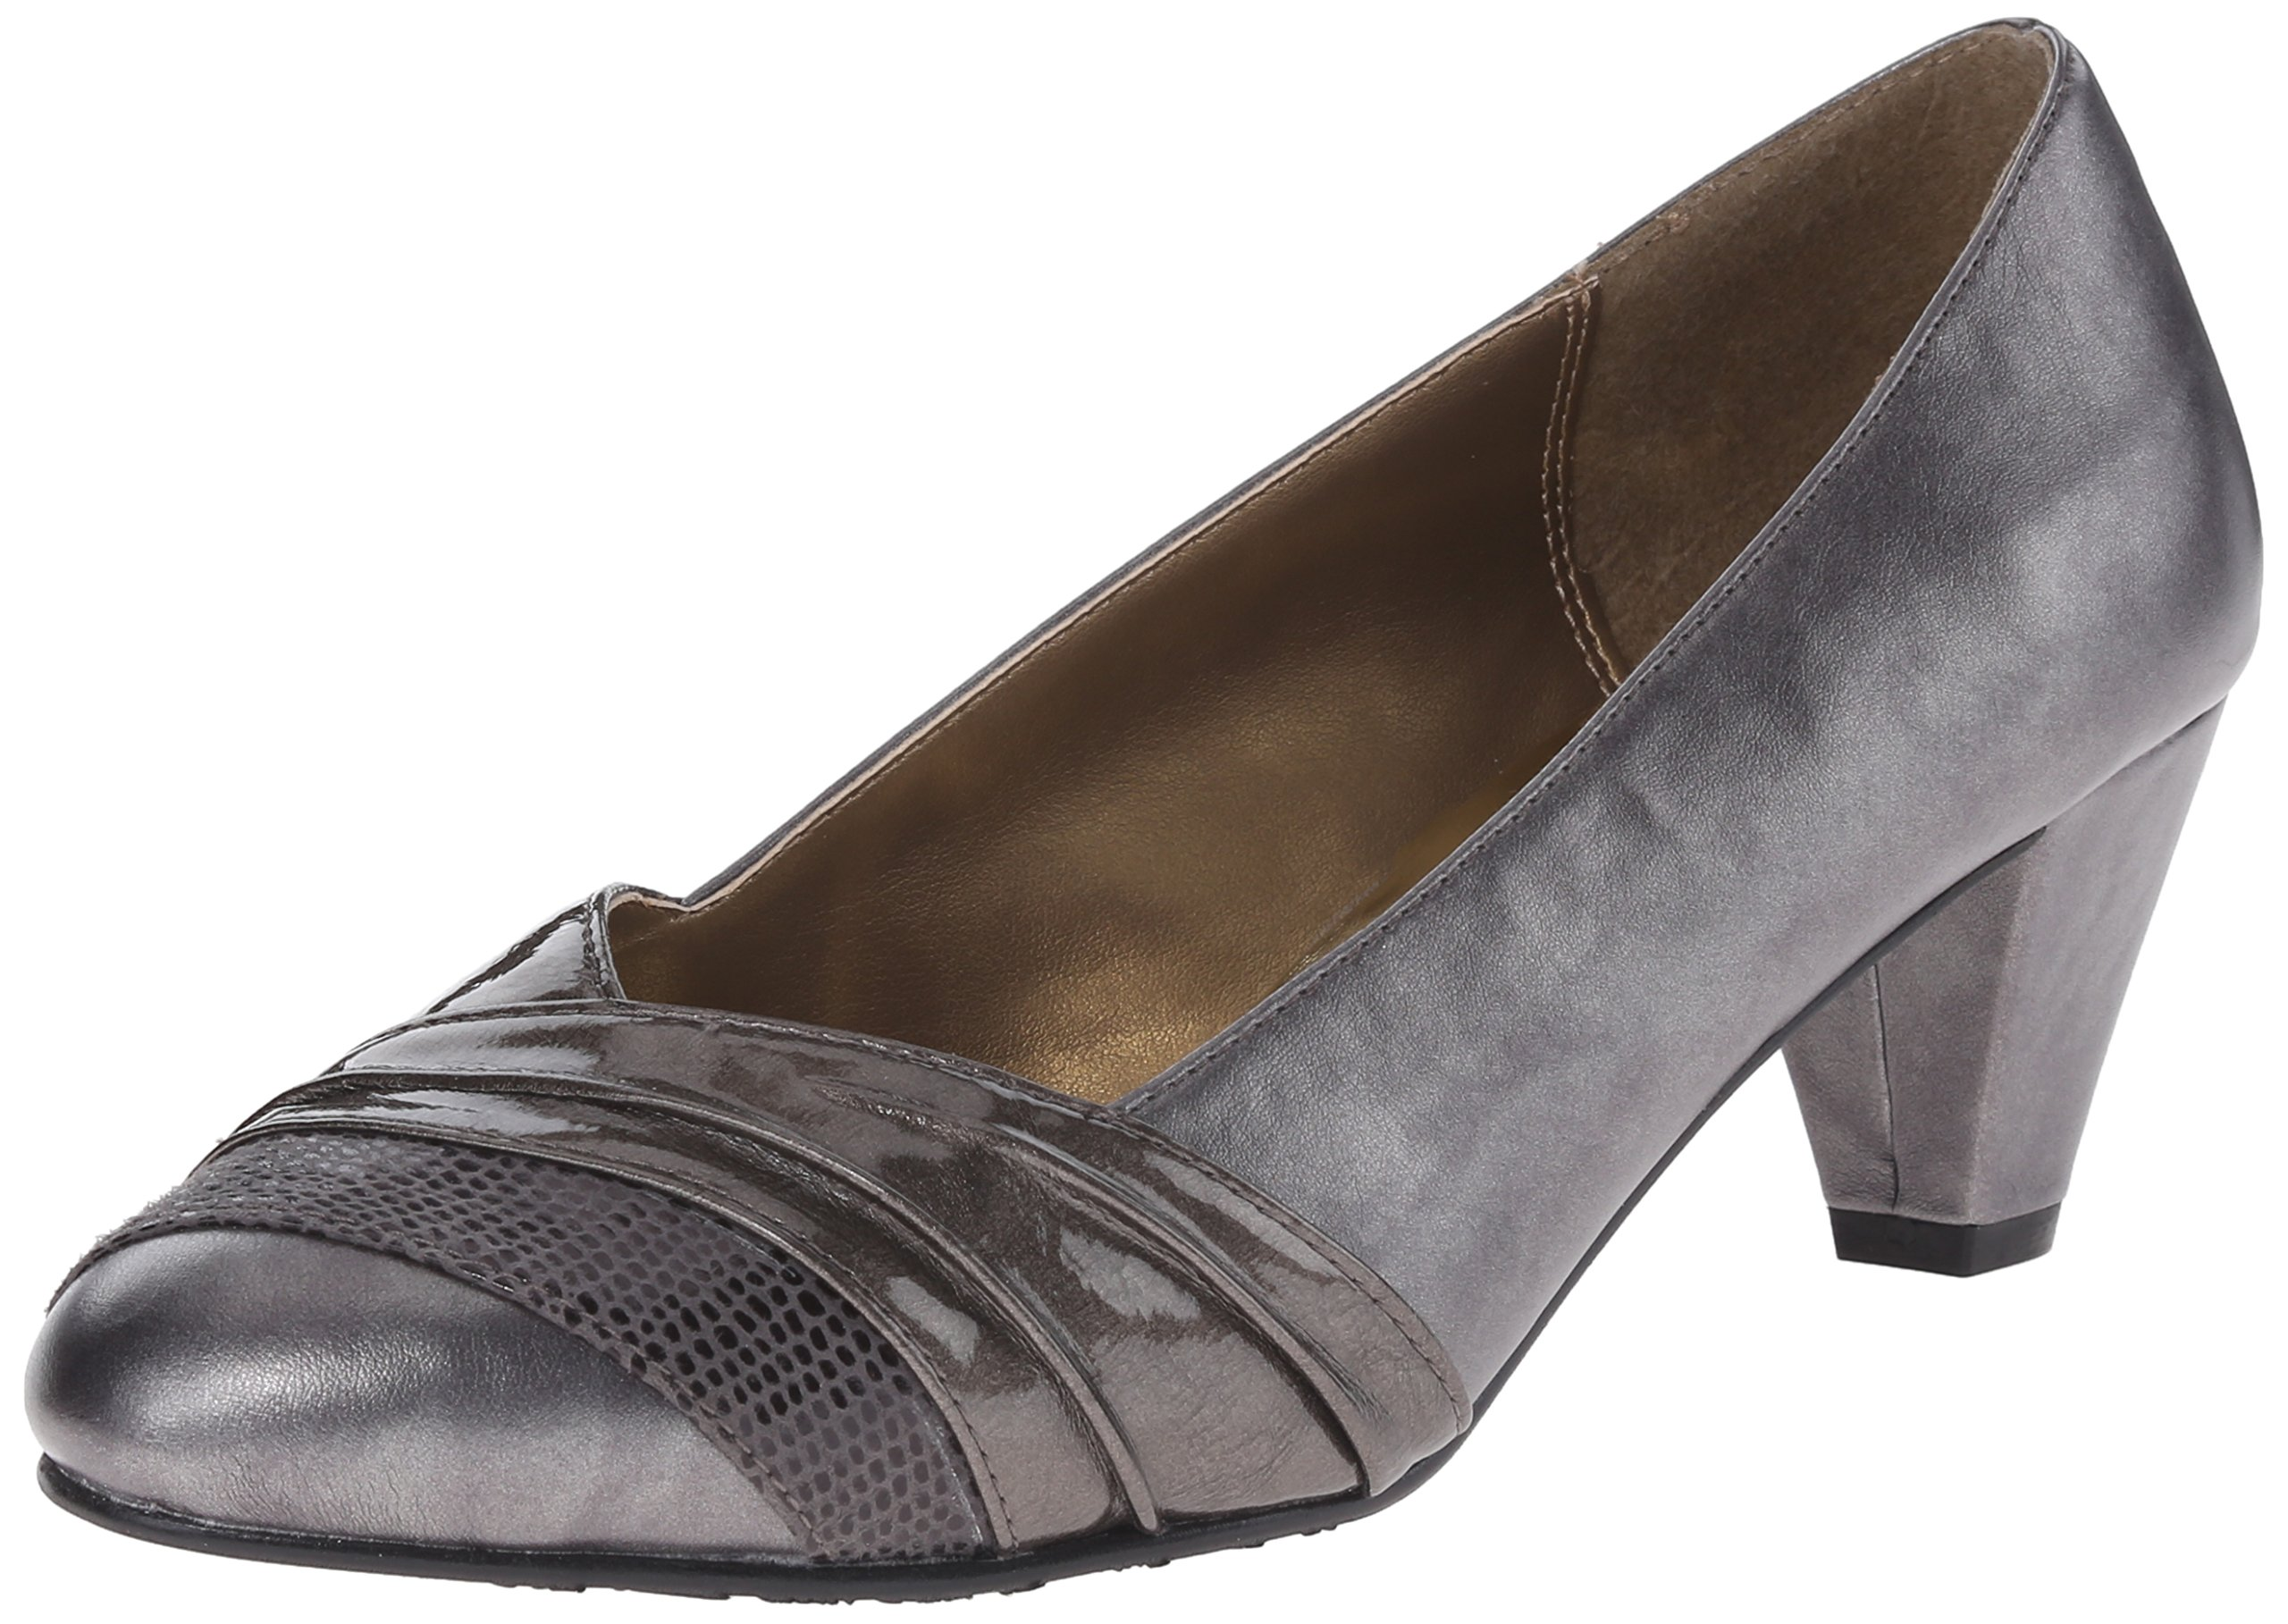 Soft Style by Hush Puppies Women's Danette Dress Pump, Dark Pewter Vitello/Pearlized Patent, 7.5 M US by Soft Style